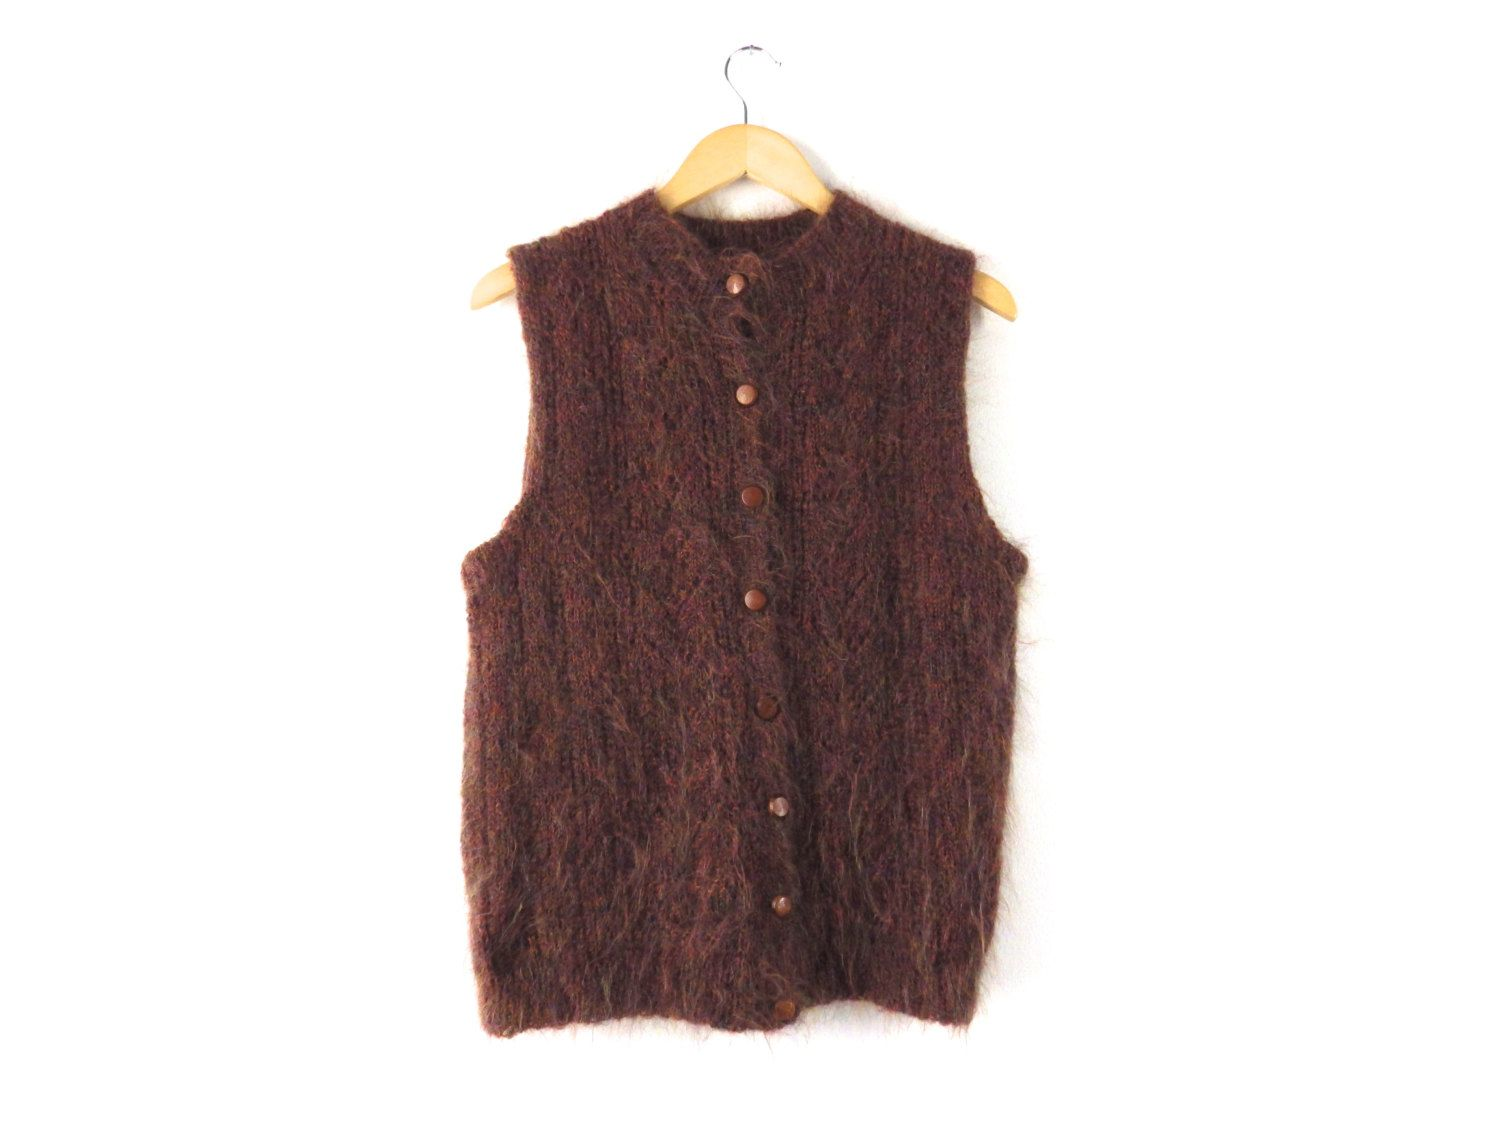 70s Fuzzy Mohair Sweater Vest with Wooden Buttons - Earth Tone ...